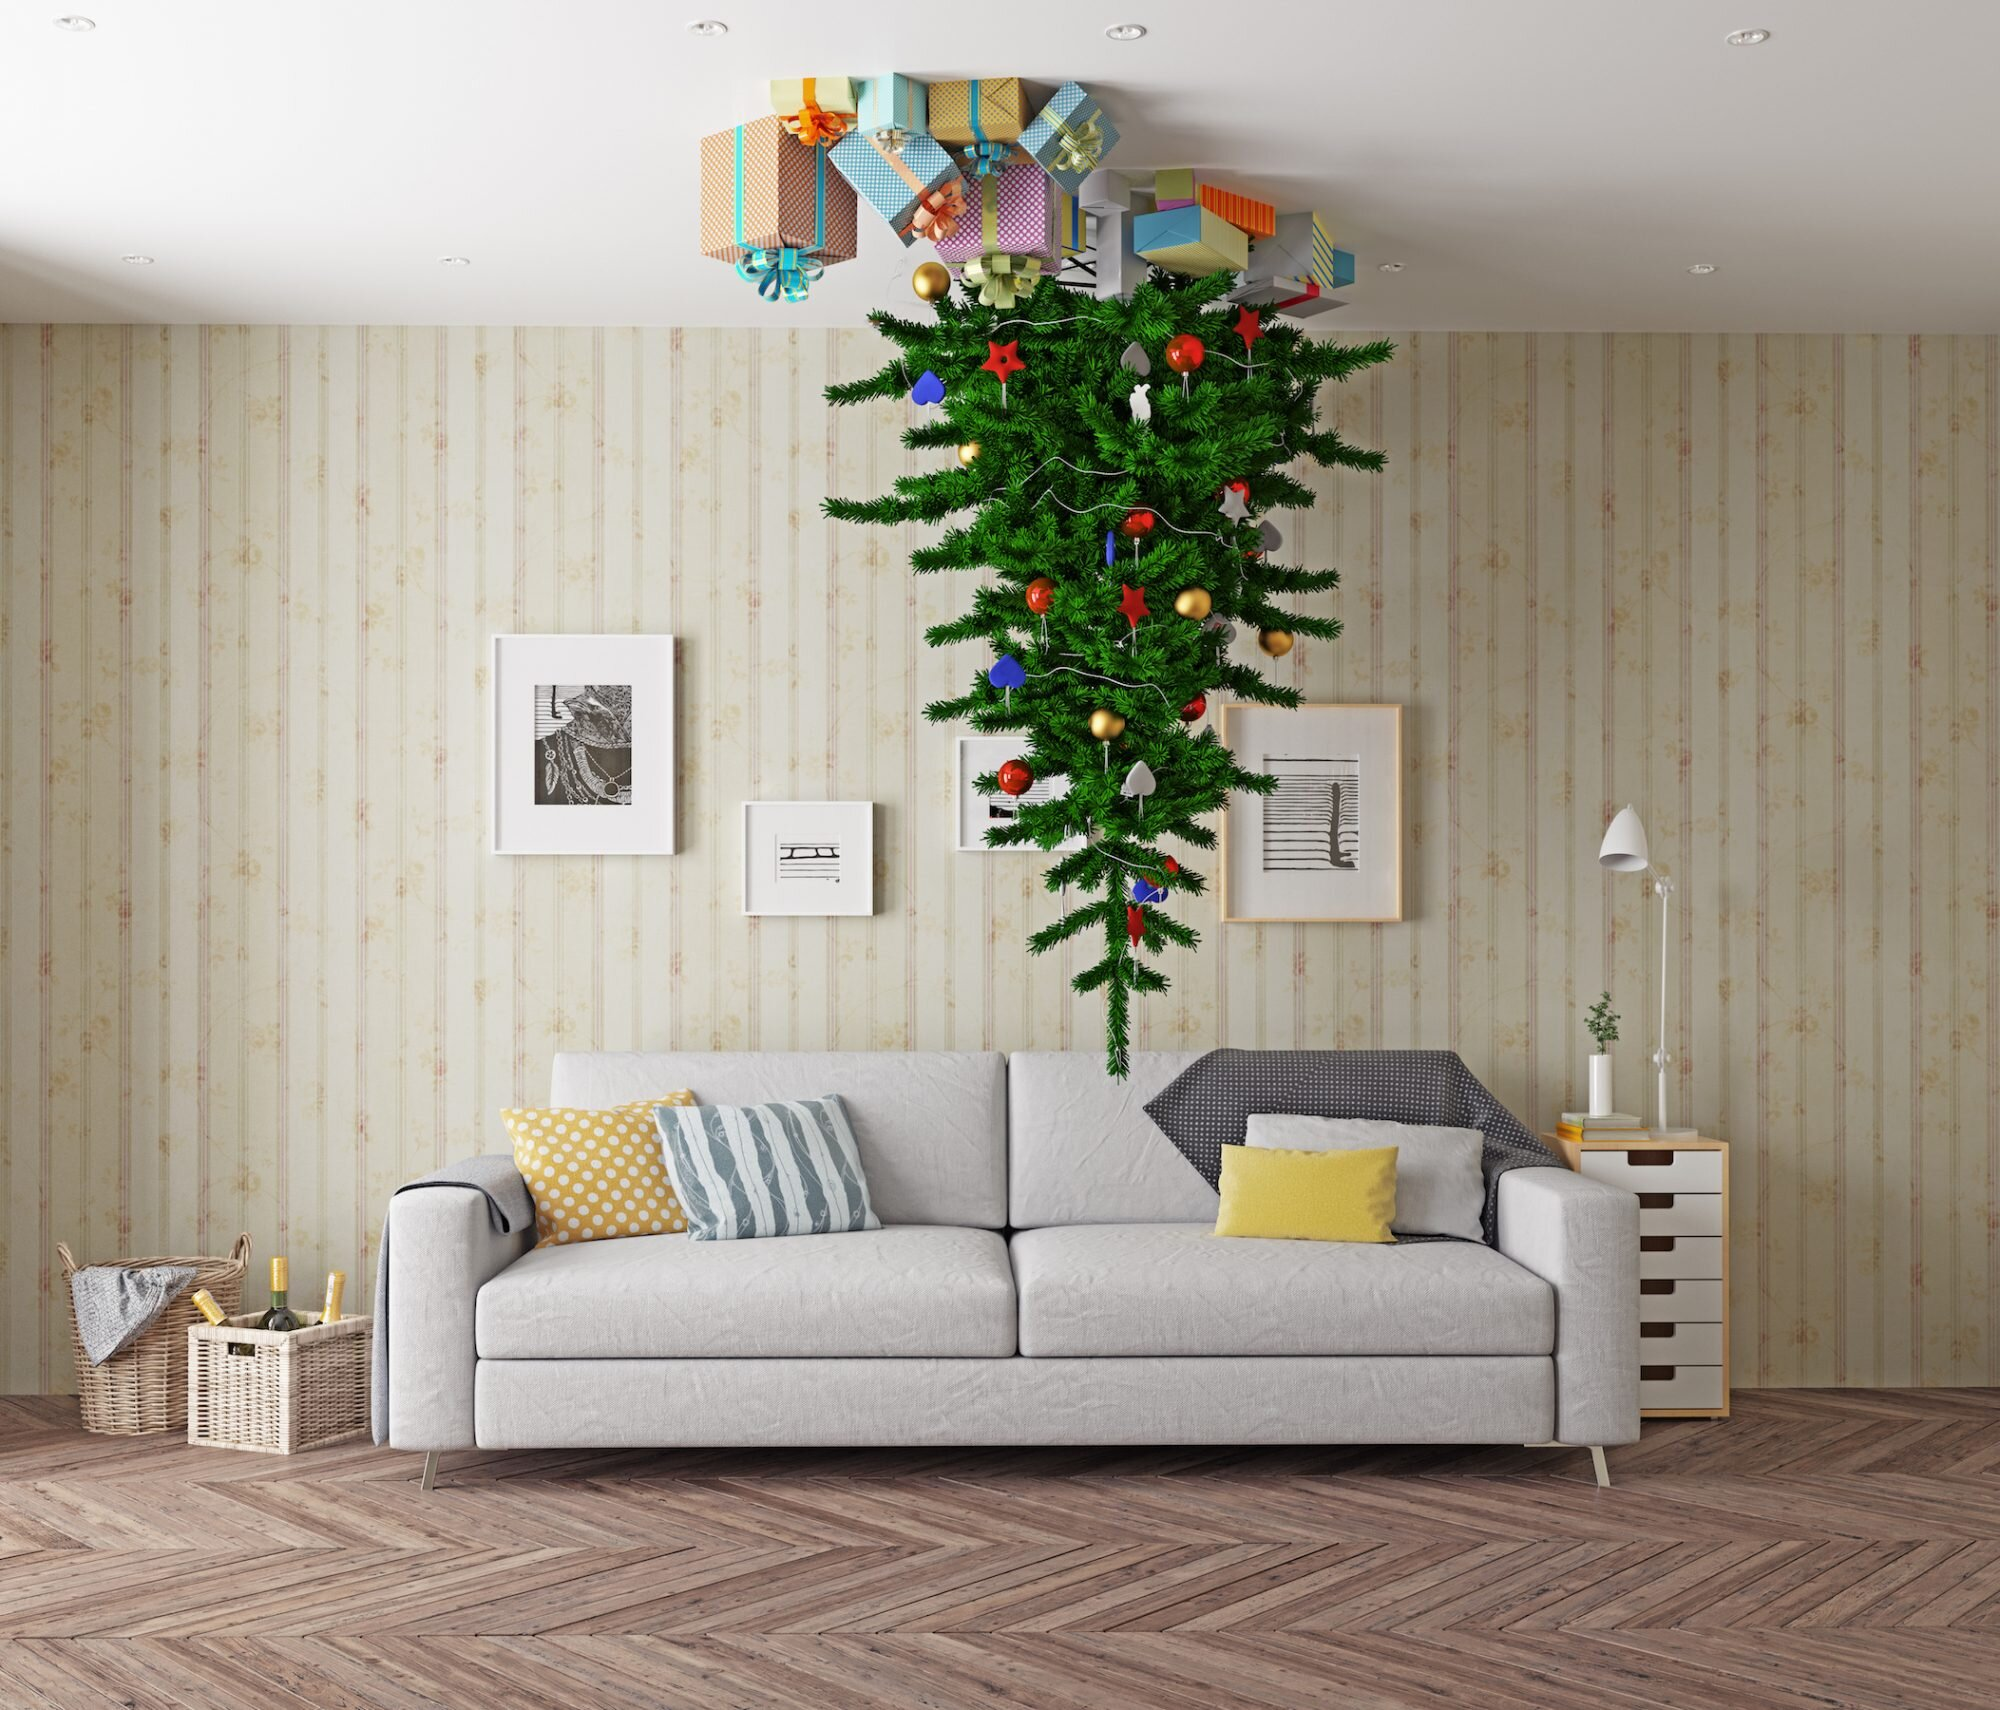 Upside Down Christmas Trees Are 2017 S